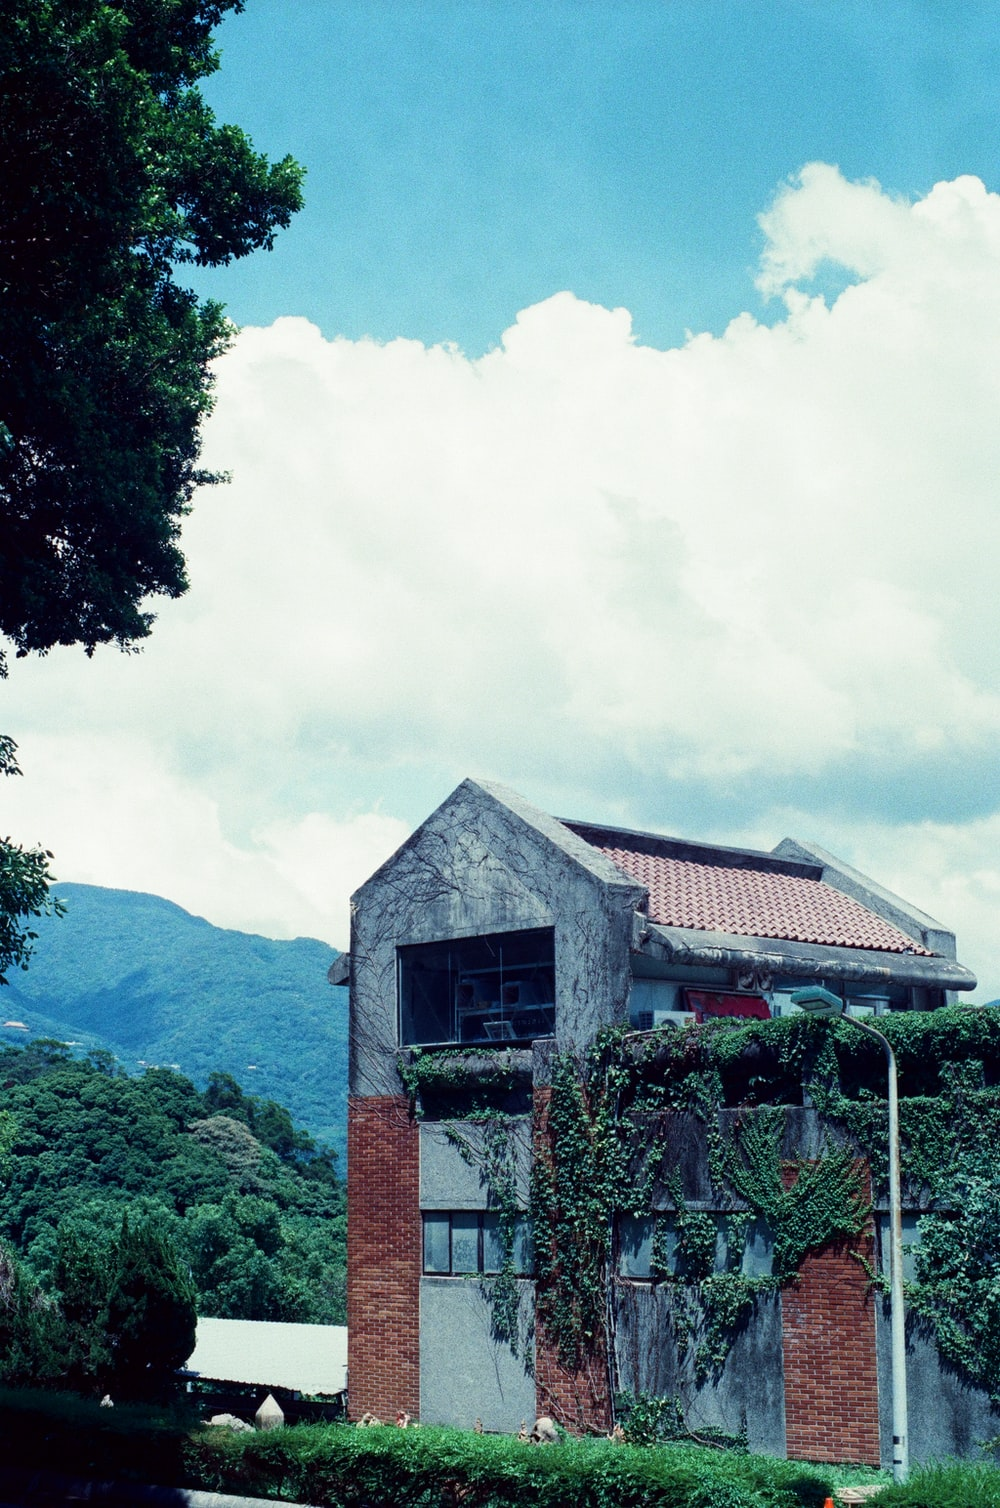 brown and white concrete house near green trees under white clouds and blue sky during daytime